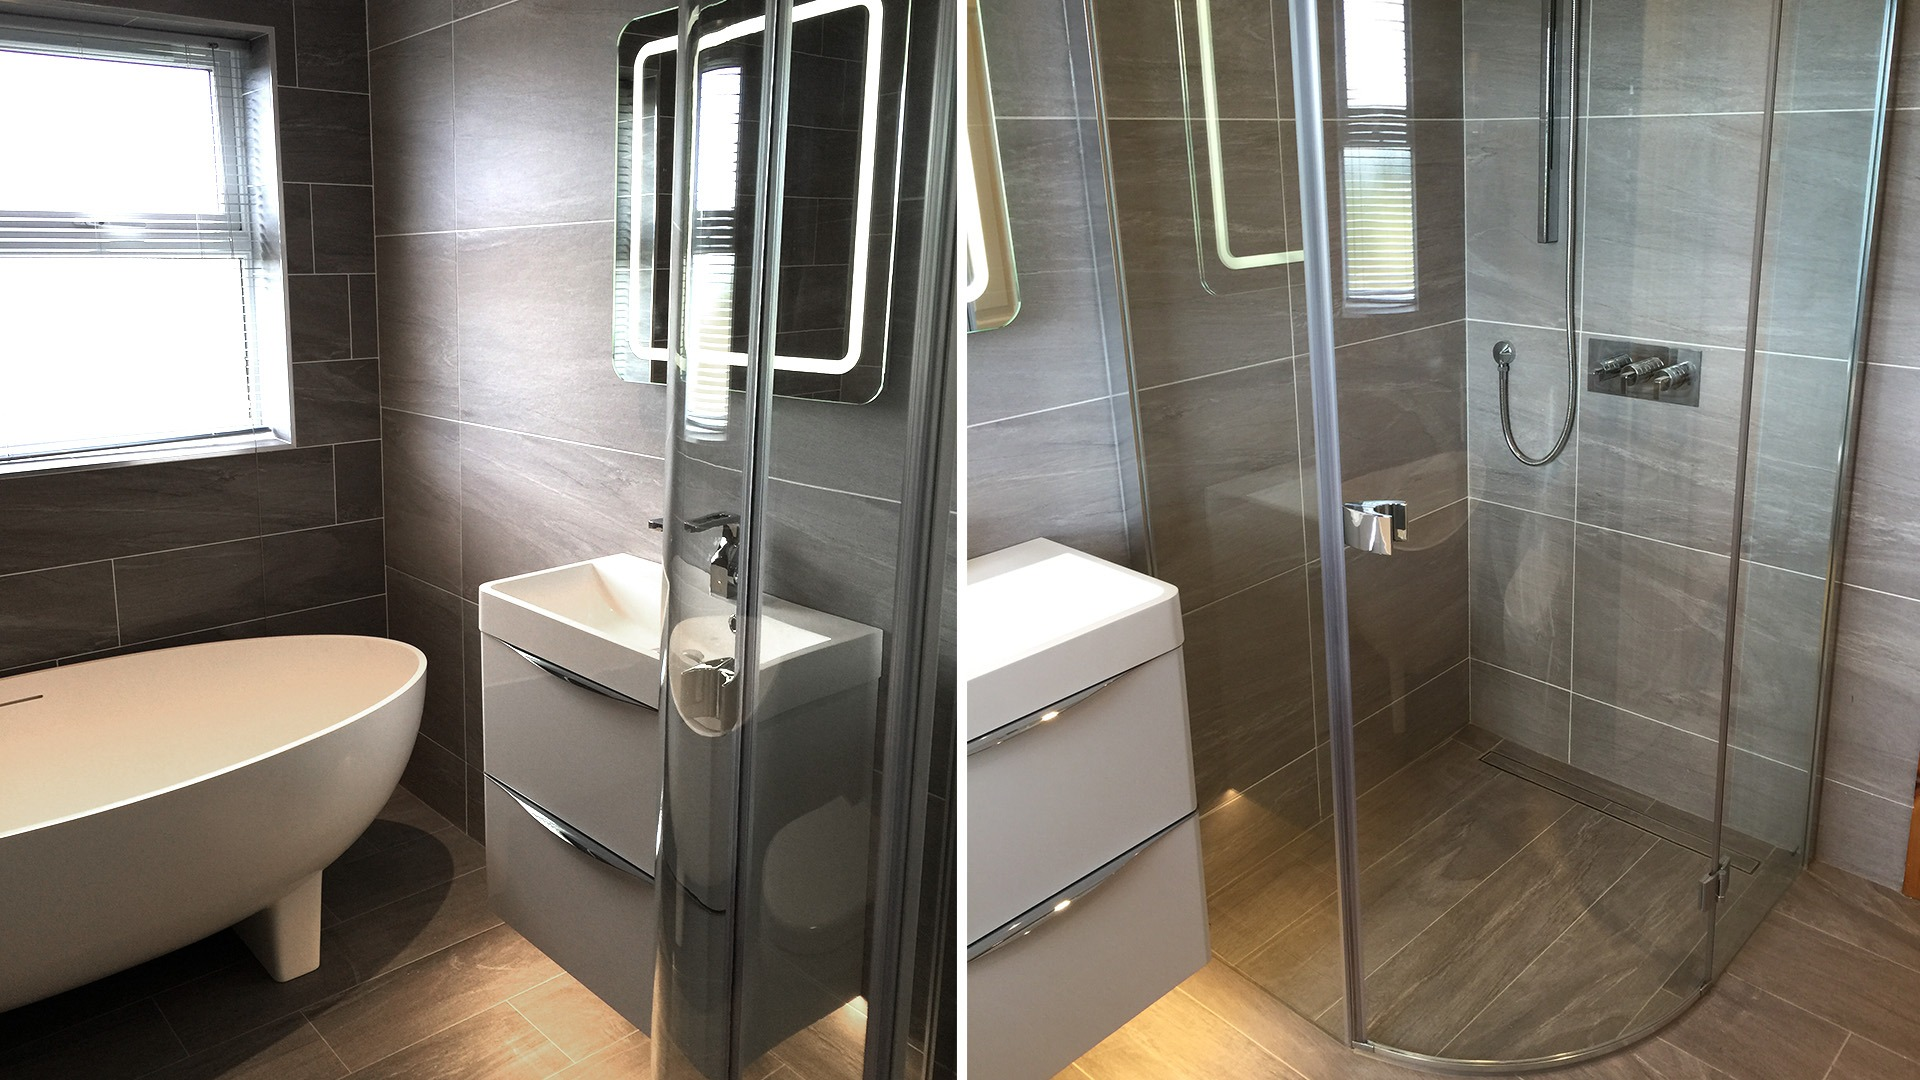 bathroom renovation by mdc tiles and bathrooms in Northern Ireland